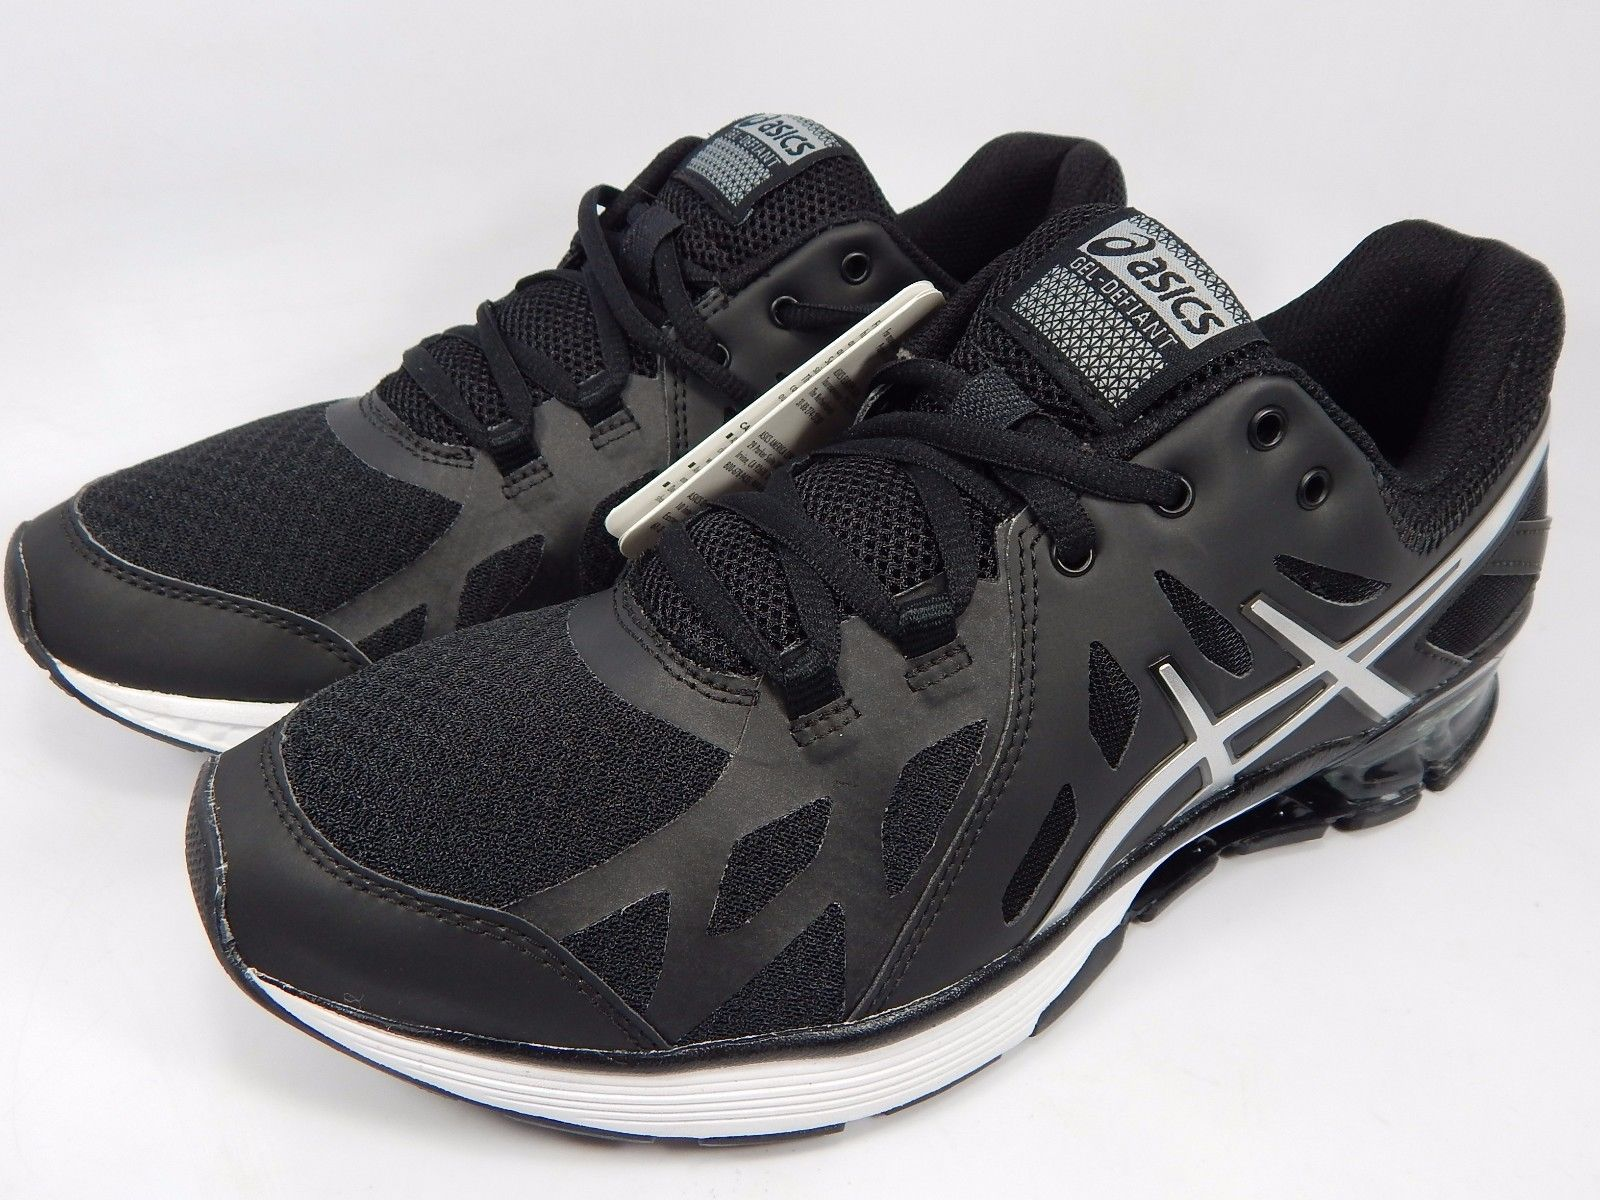 Asics Gel Defiant Men's Running Shoes Size US 8 M (D) EU 41.5 Black S412N